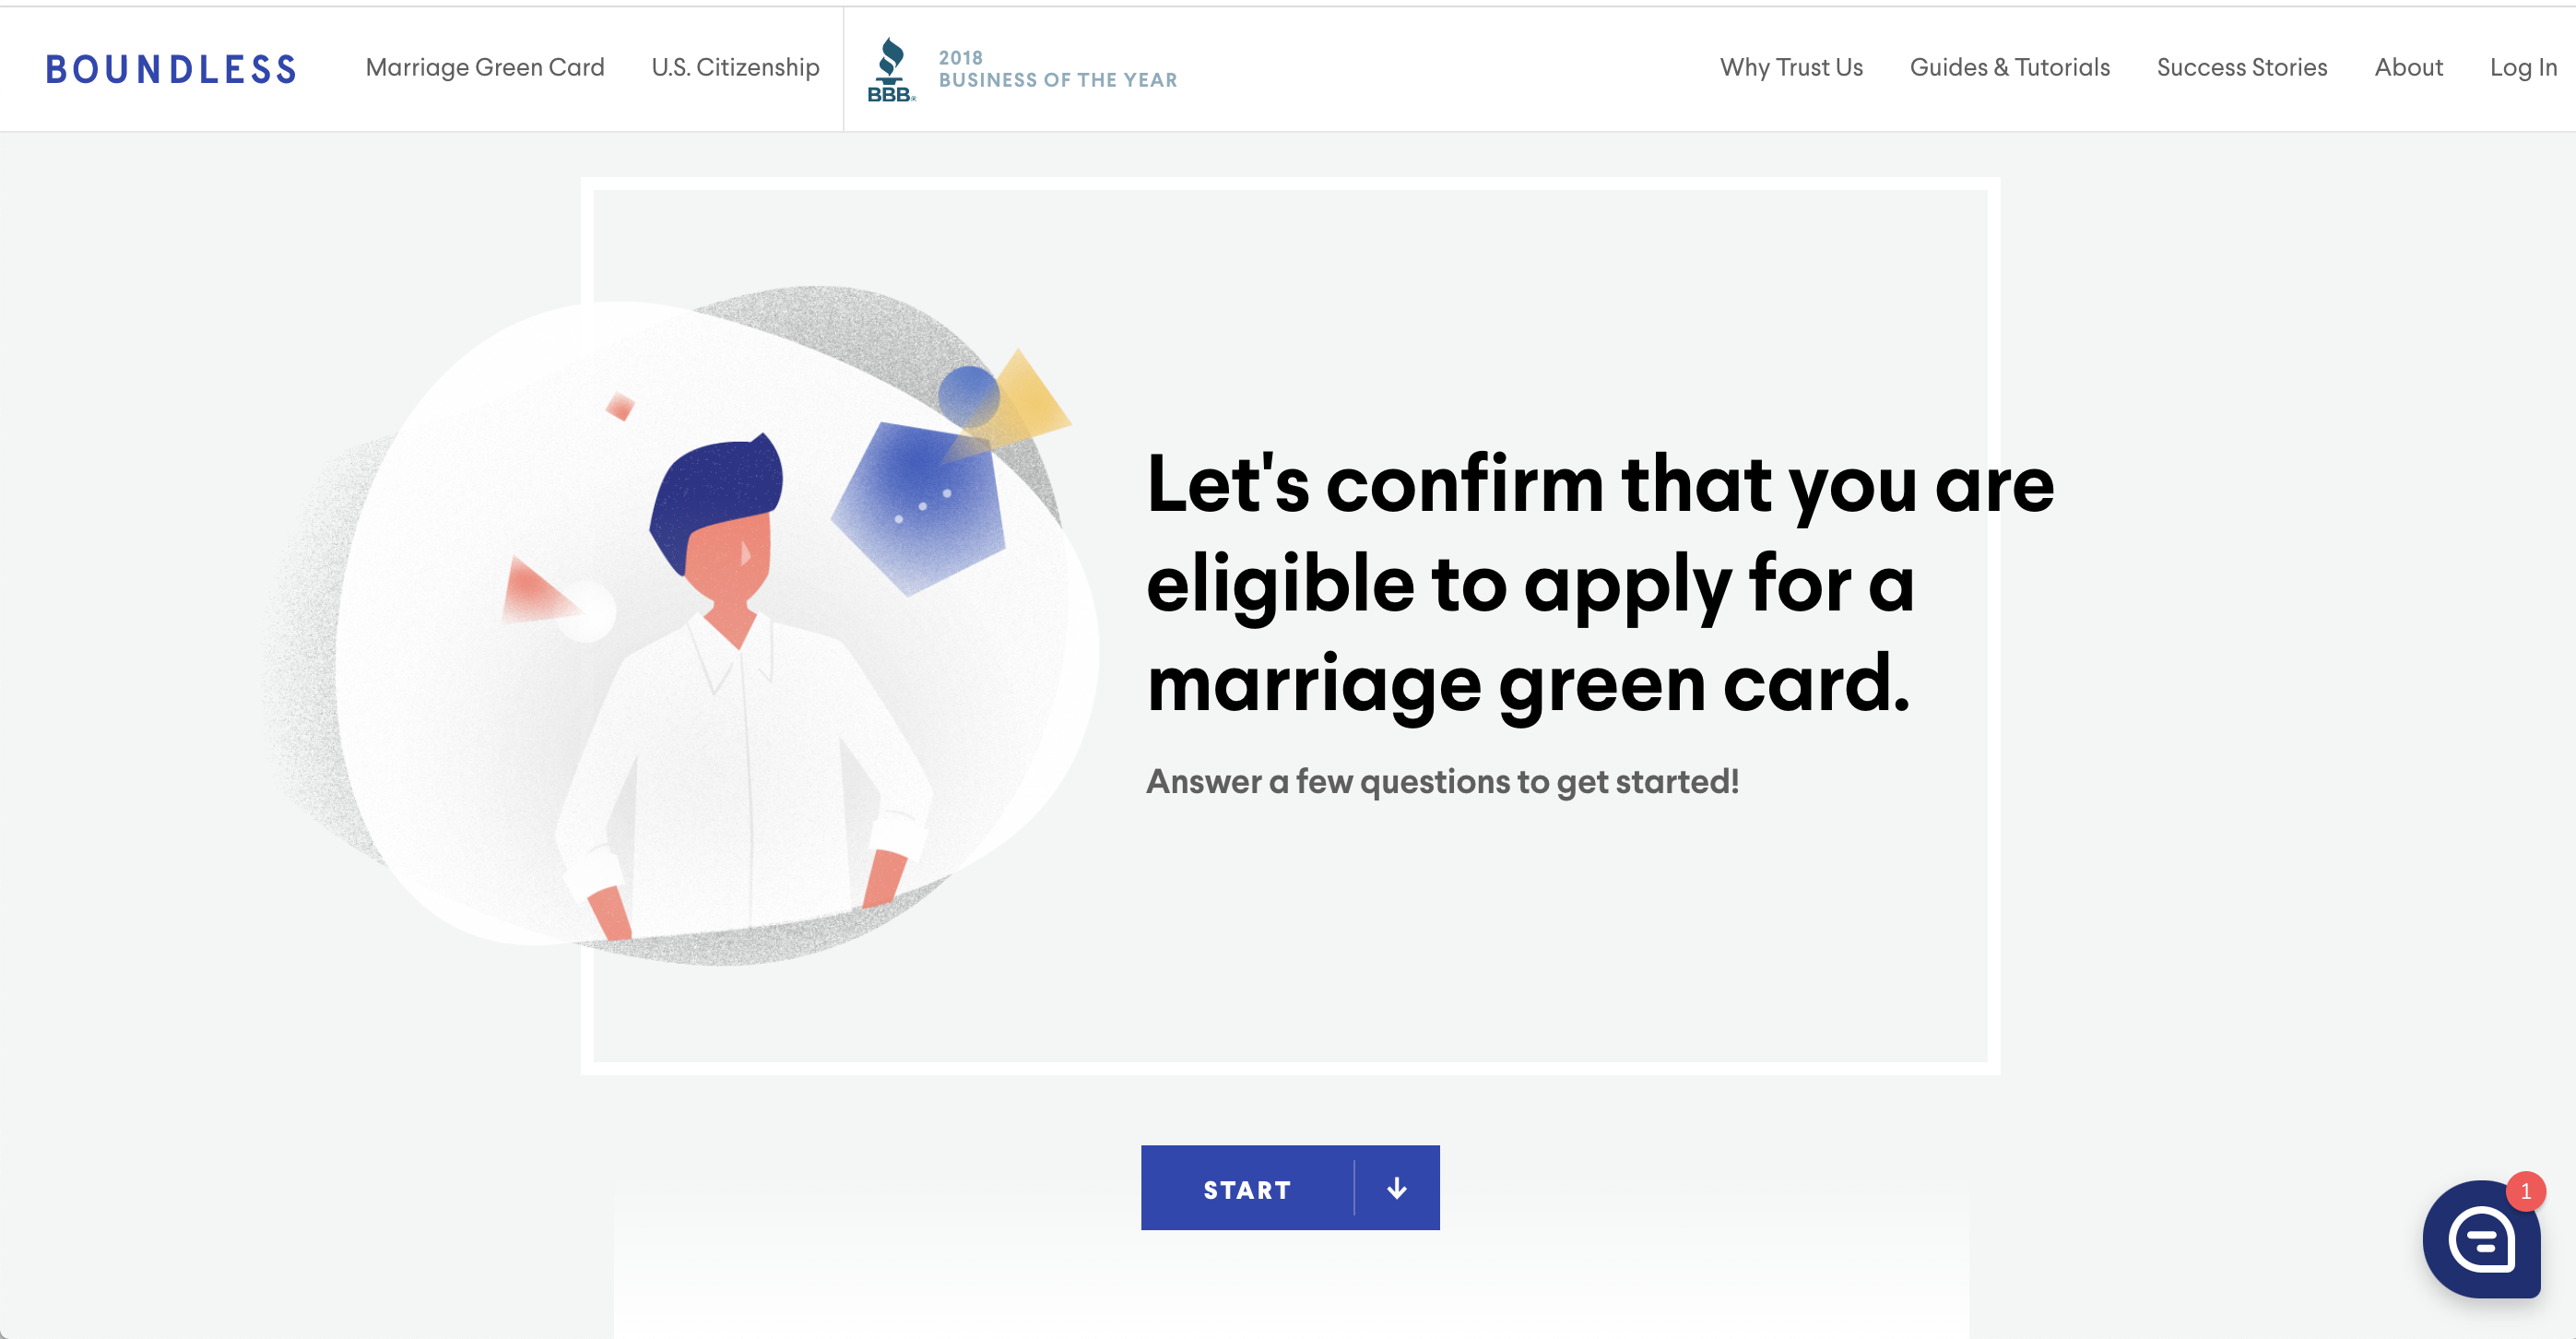 Immigration startup Boundless raises $25M, eyes opportunity with 'pro-immigrant administration'